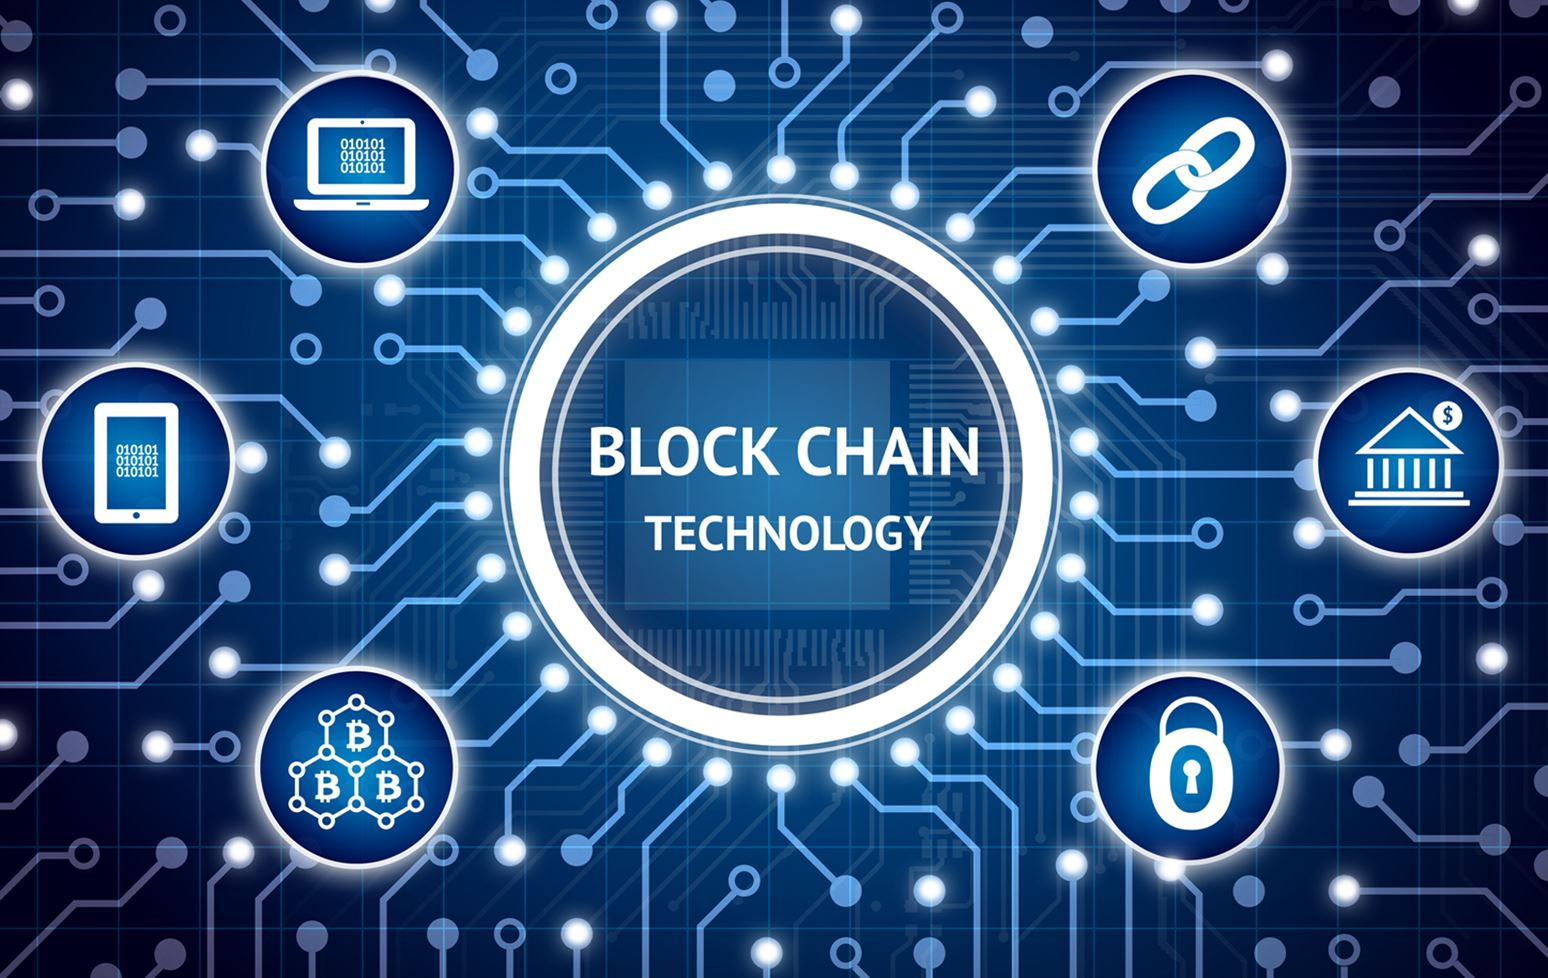 The many uses of blockchain technology